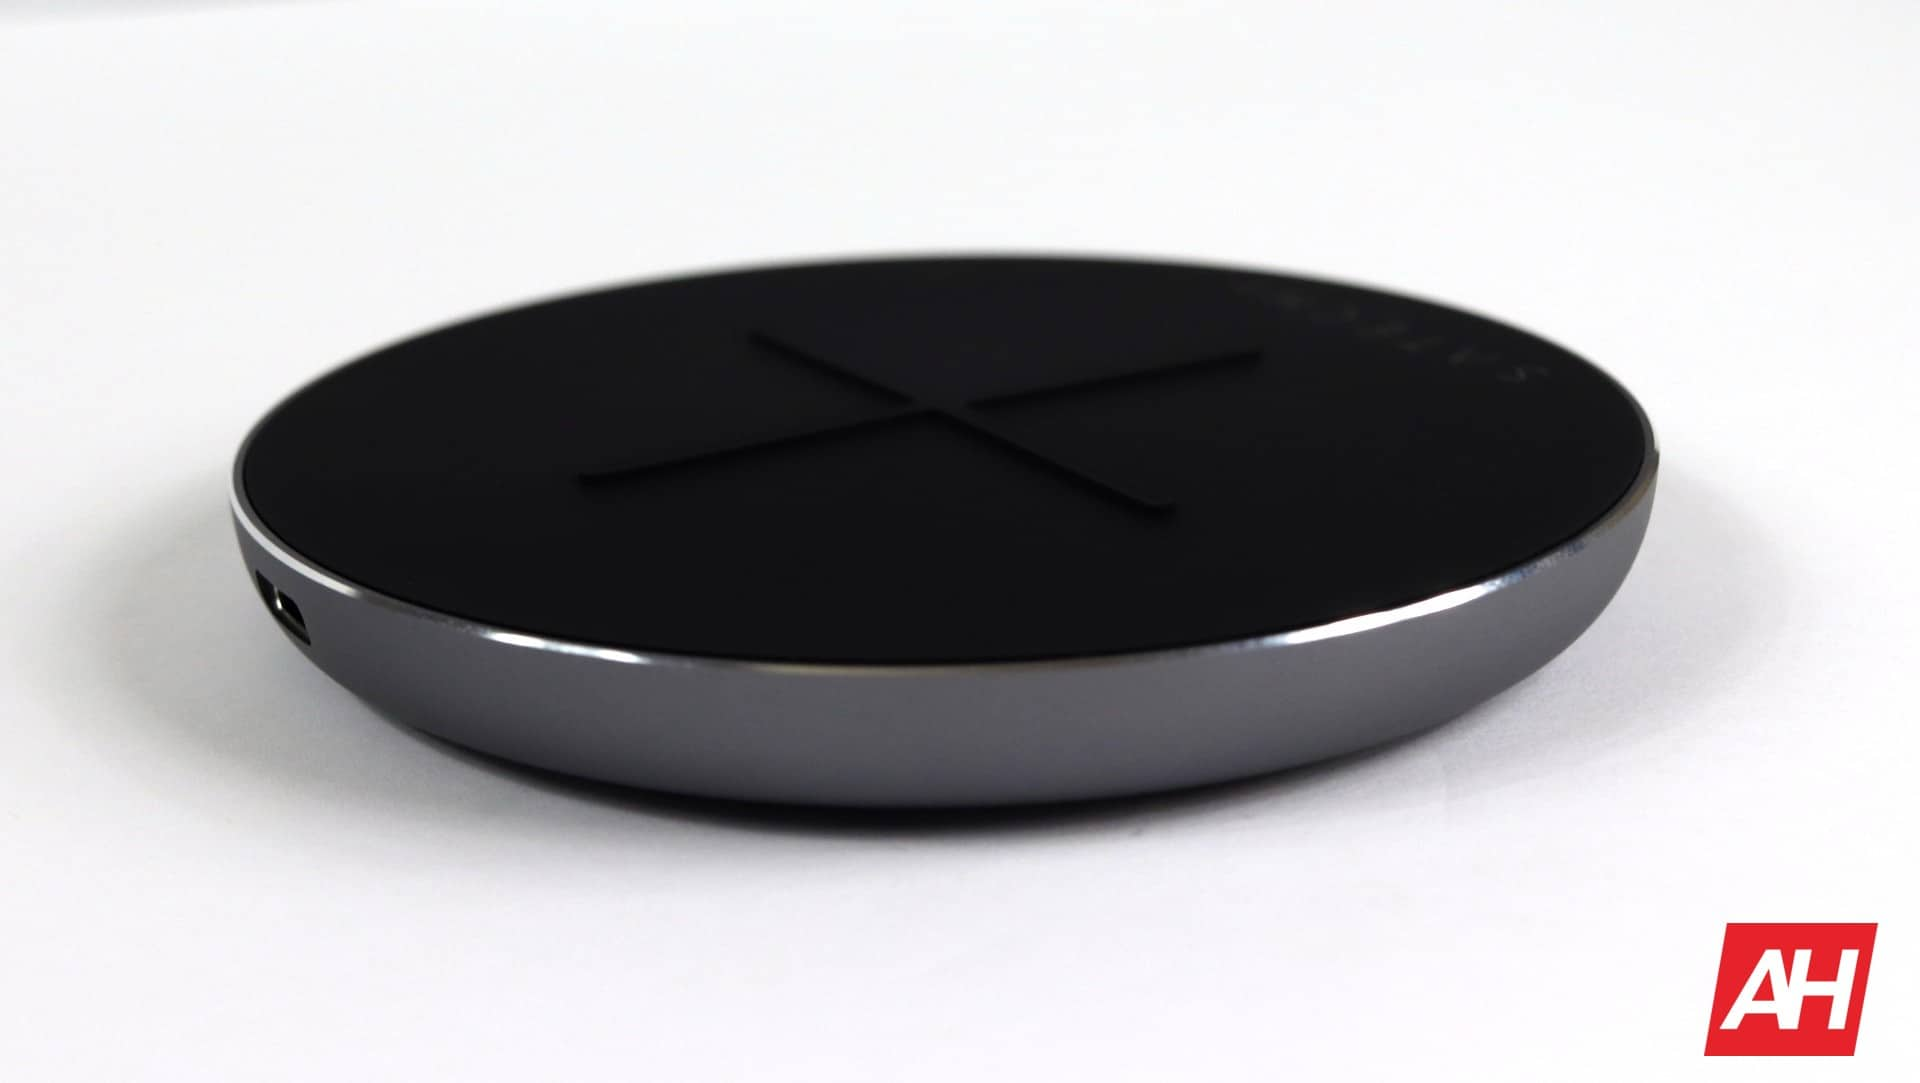 Satechi Wireless Charger V2 Review 03 AH